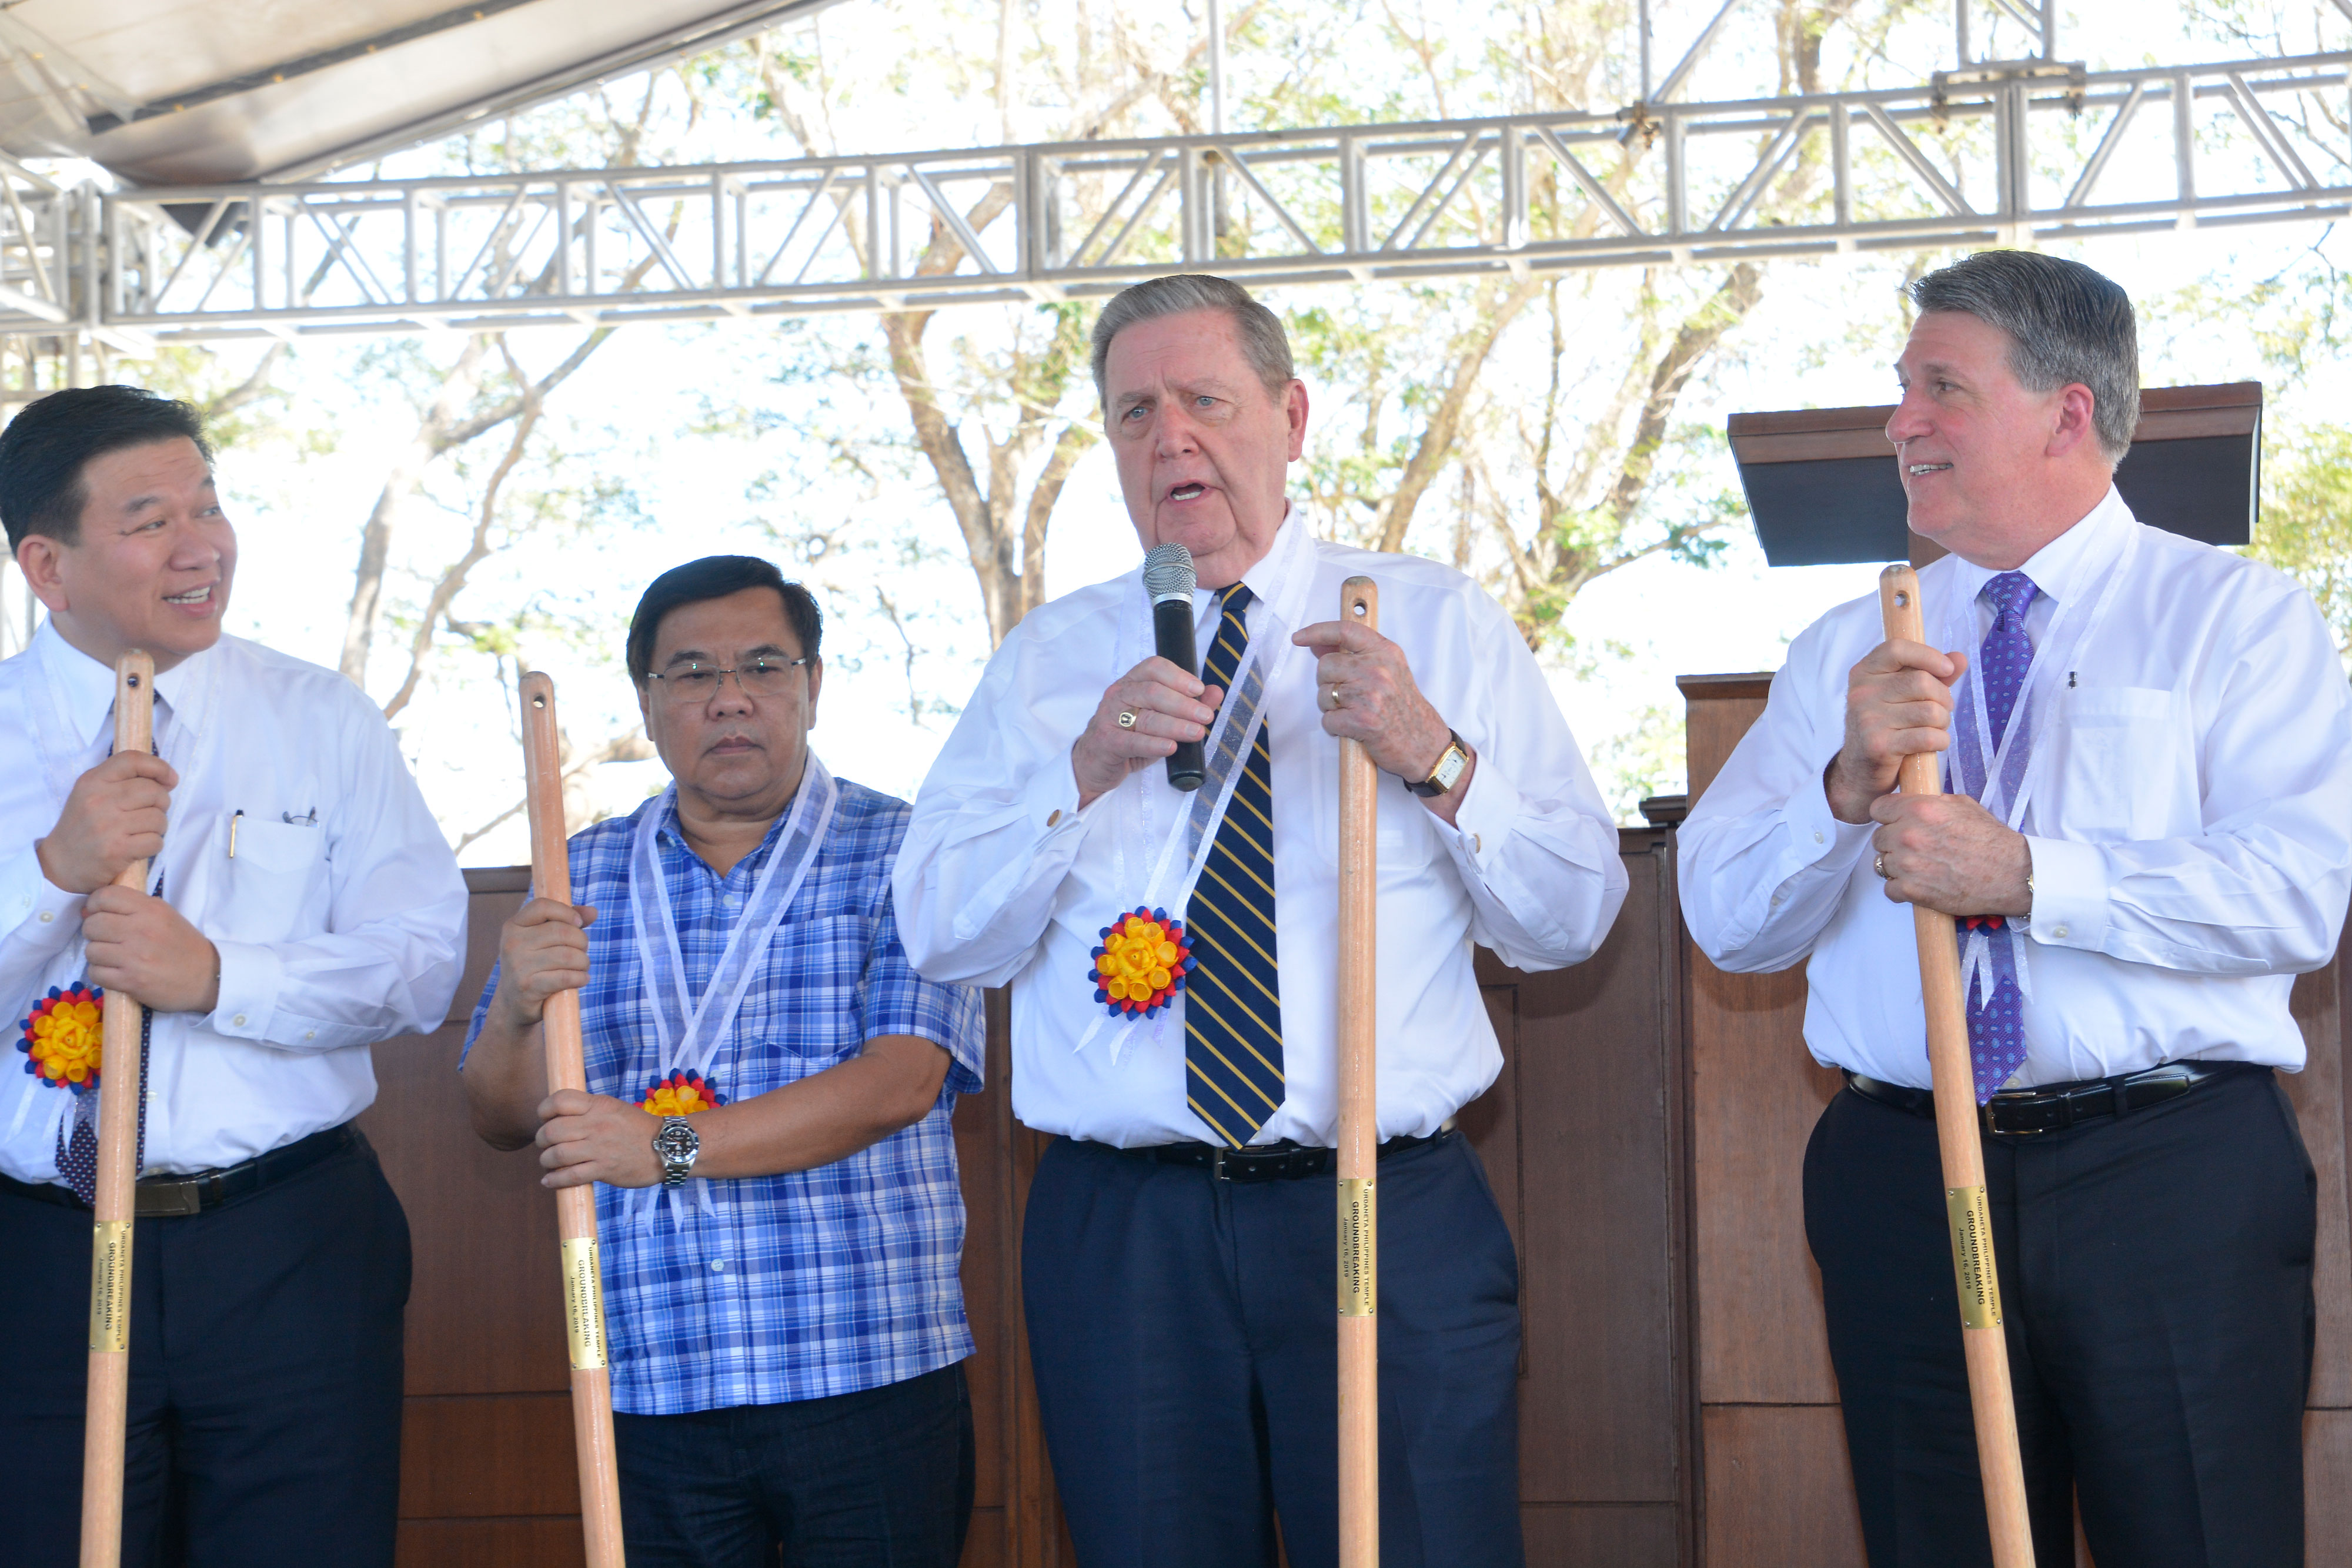 Elder Jeffrey R. Holland, center, of the Quorum of the Twelve Apostles addresses community leaders and Church membersa in Urdaneta, Pangasinan, Philippines, on Wednesday, Jan. 16, 2019. He broke ground for the new temple, the Church's third in the Philippines.